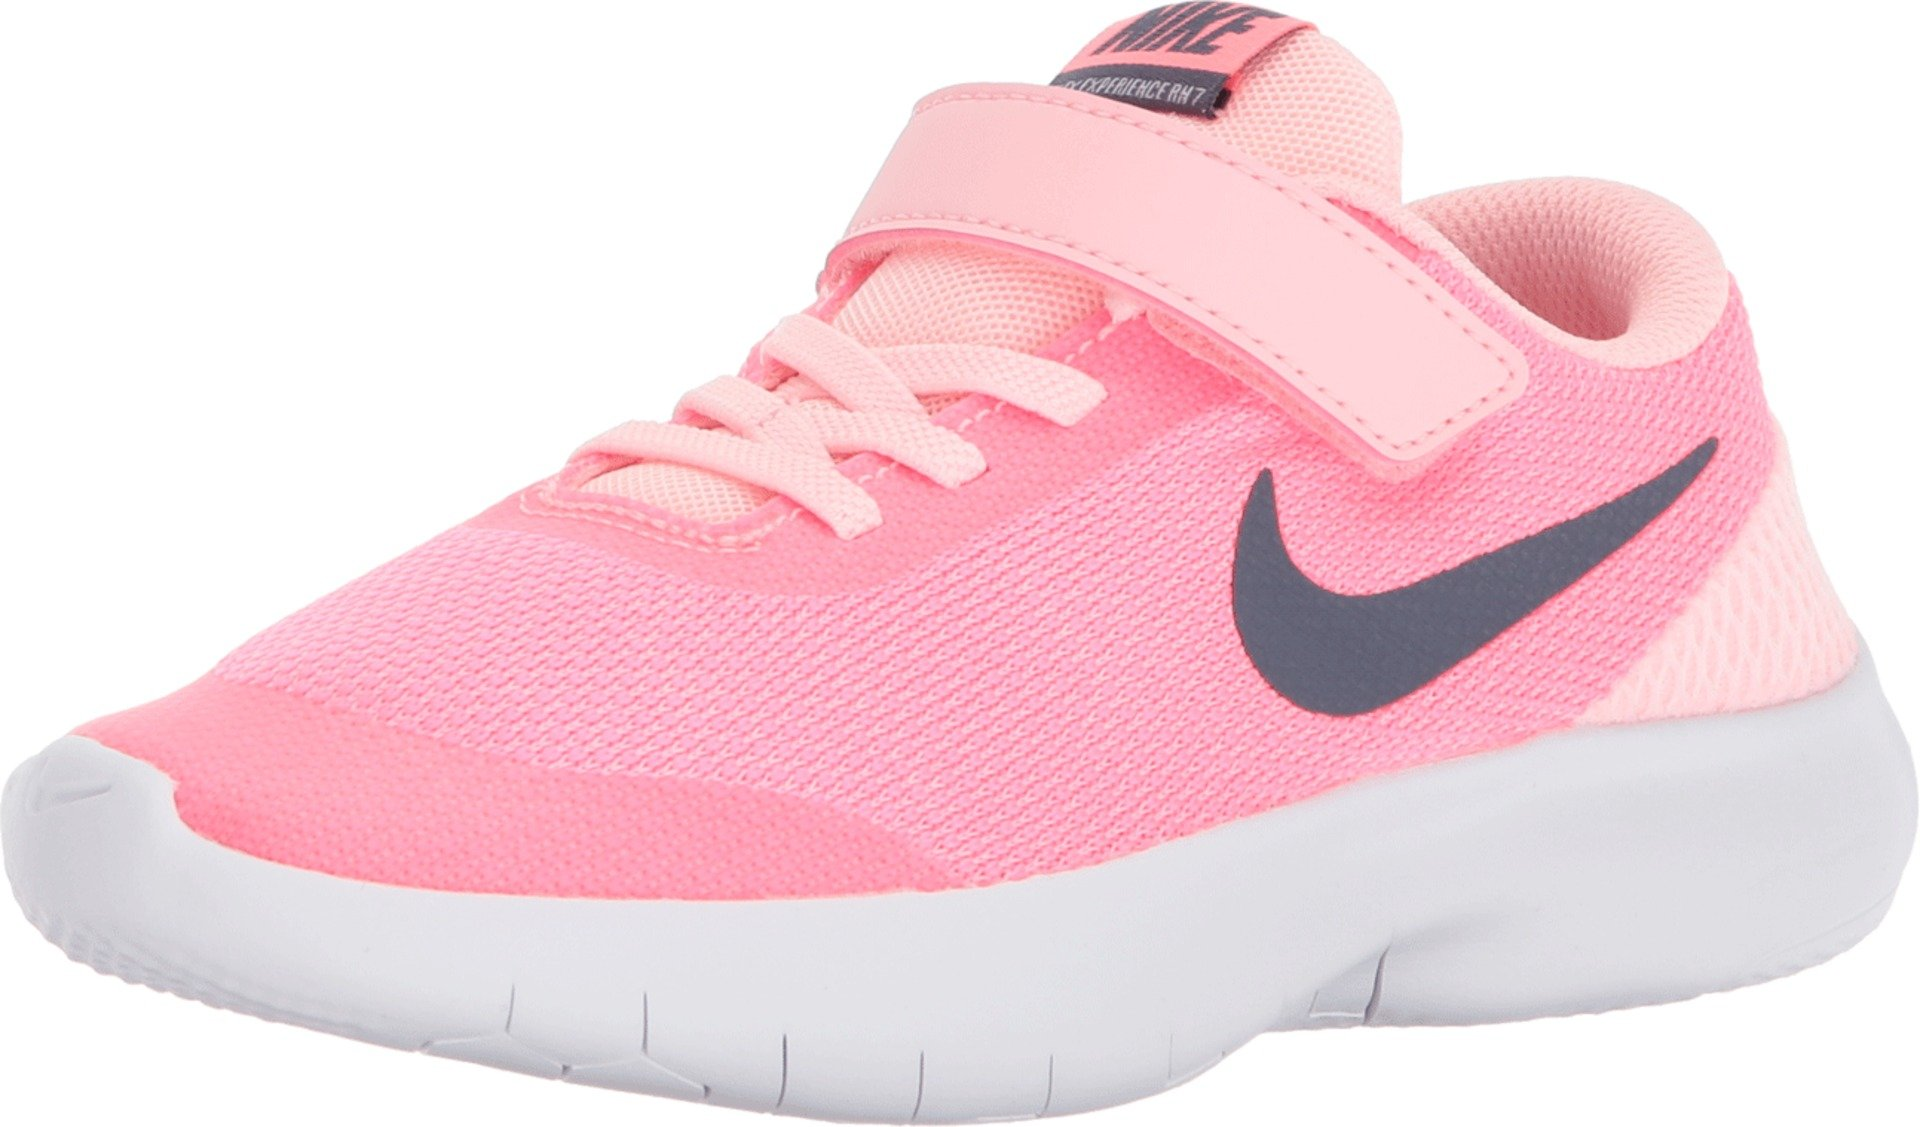 Nike Kids Flex Experience RN 7 (PS) Arctic Punch LT Carbon Sunset Size 1